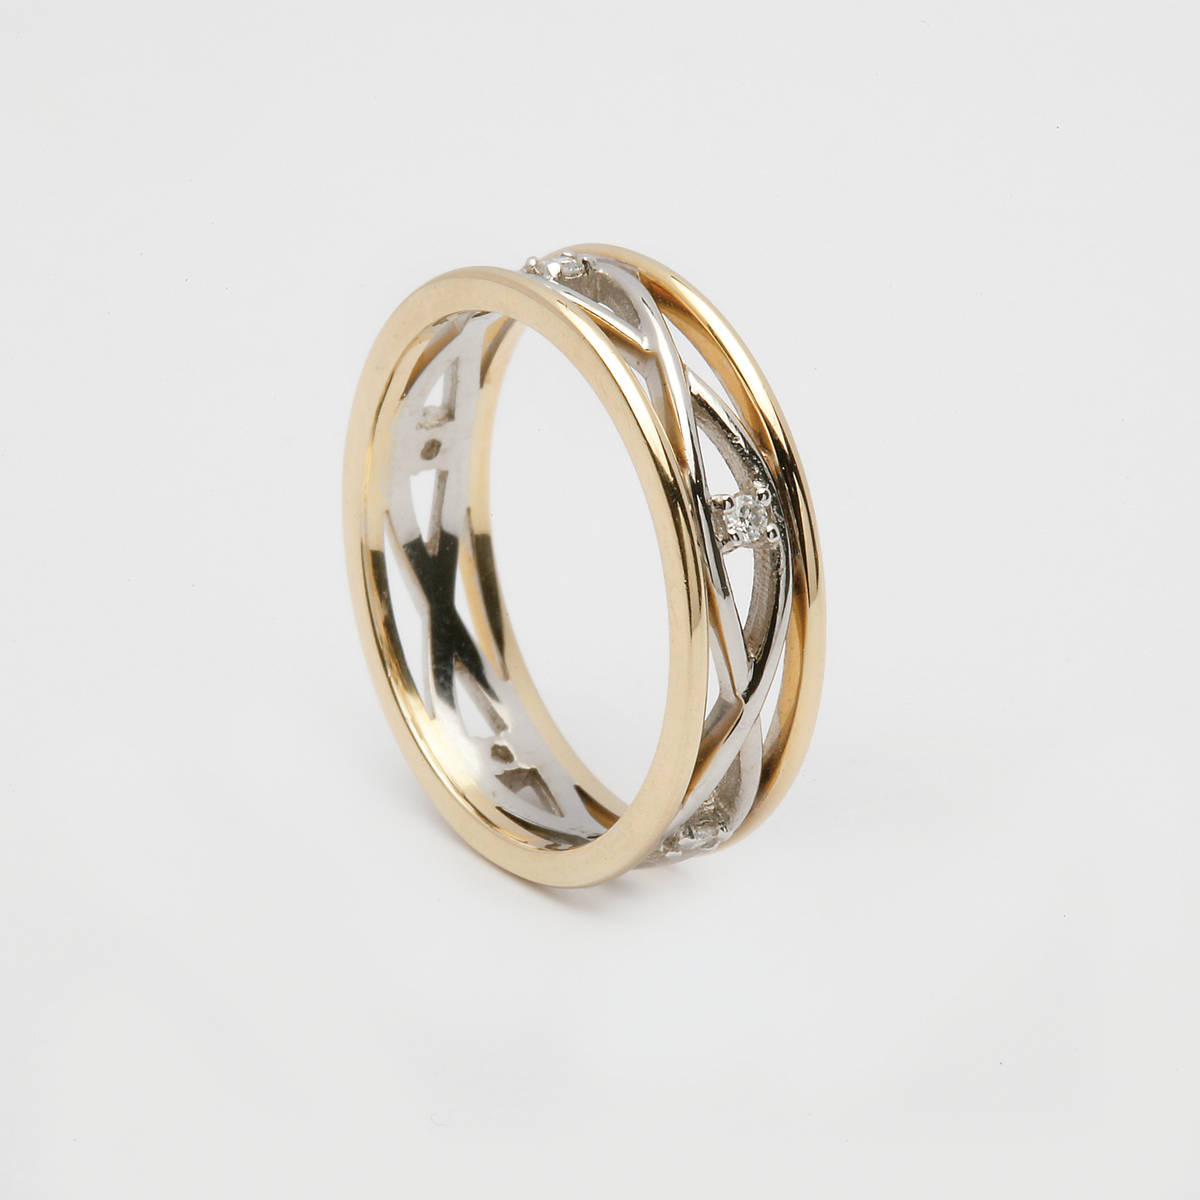 14 carat white gold lady's two lines entwined wedding ring with yellow gold rims and diamonds 14ct Lds 5.3 Mm Wed Light White 2 Rope Open Band 6 Dias Y/gold Light White Rims  gold rims and diamonds